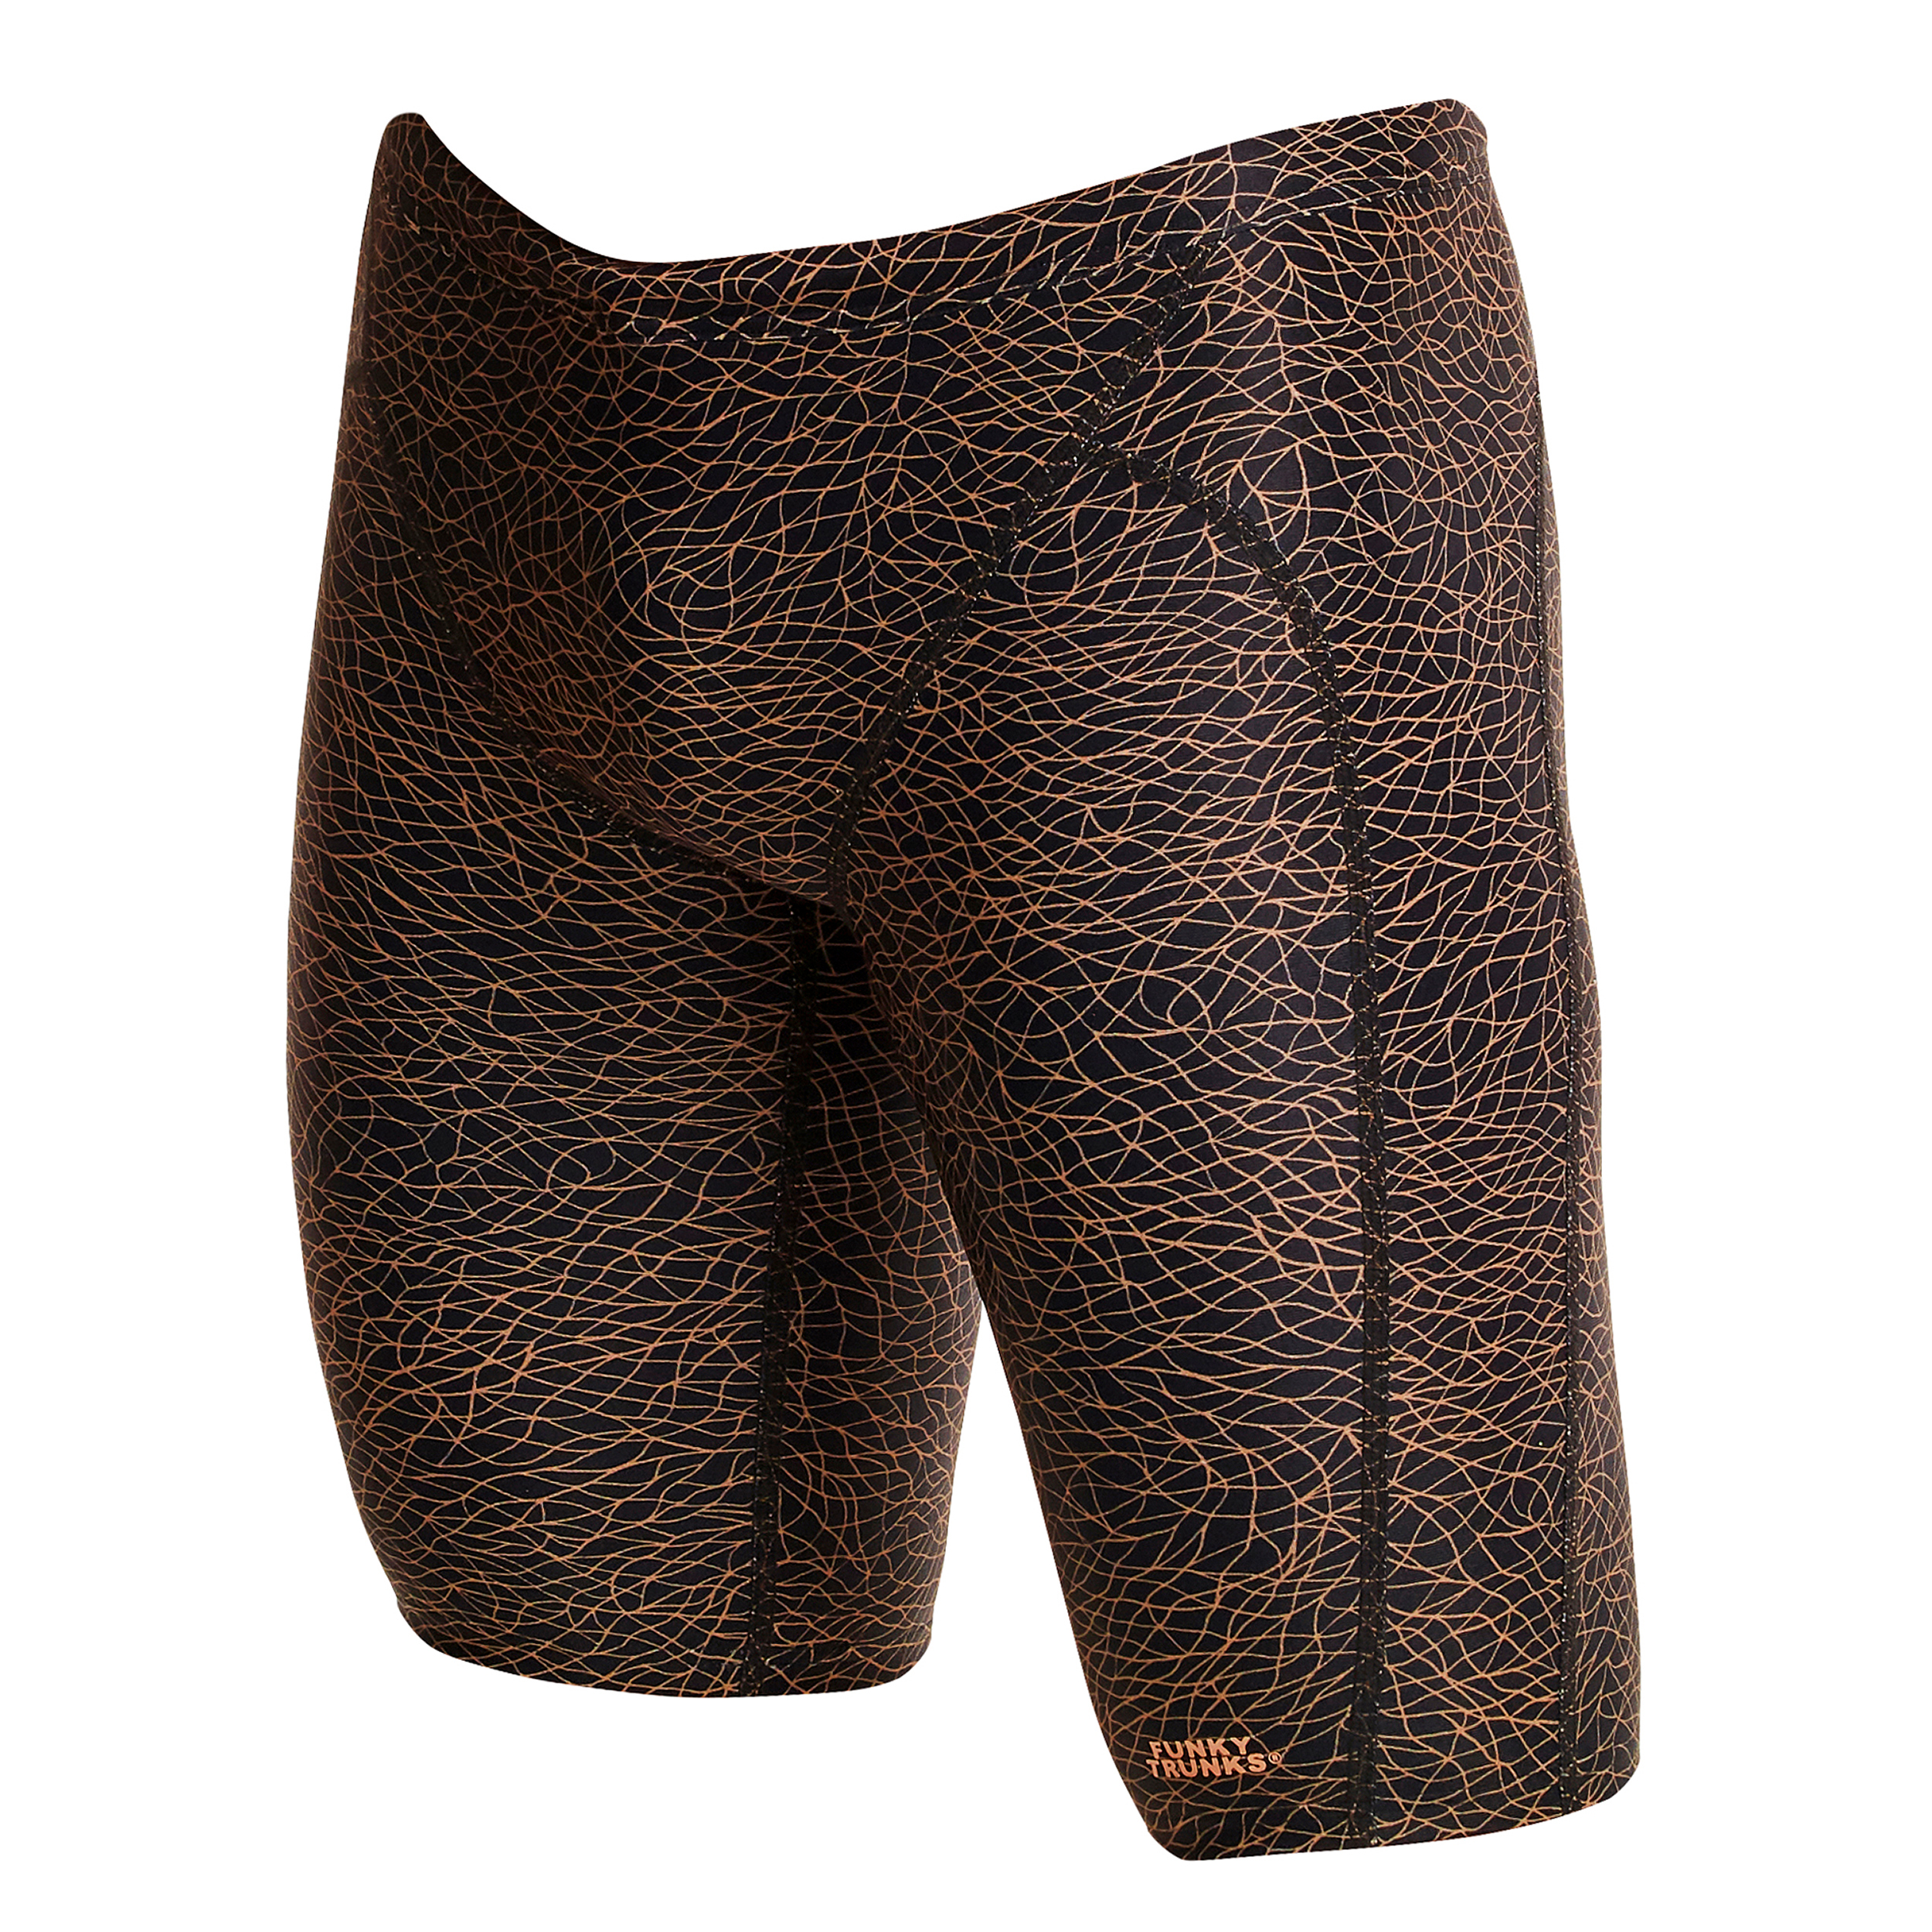 Funky Trunks Mens Leather Skin Training Jammer